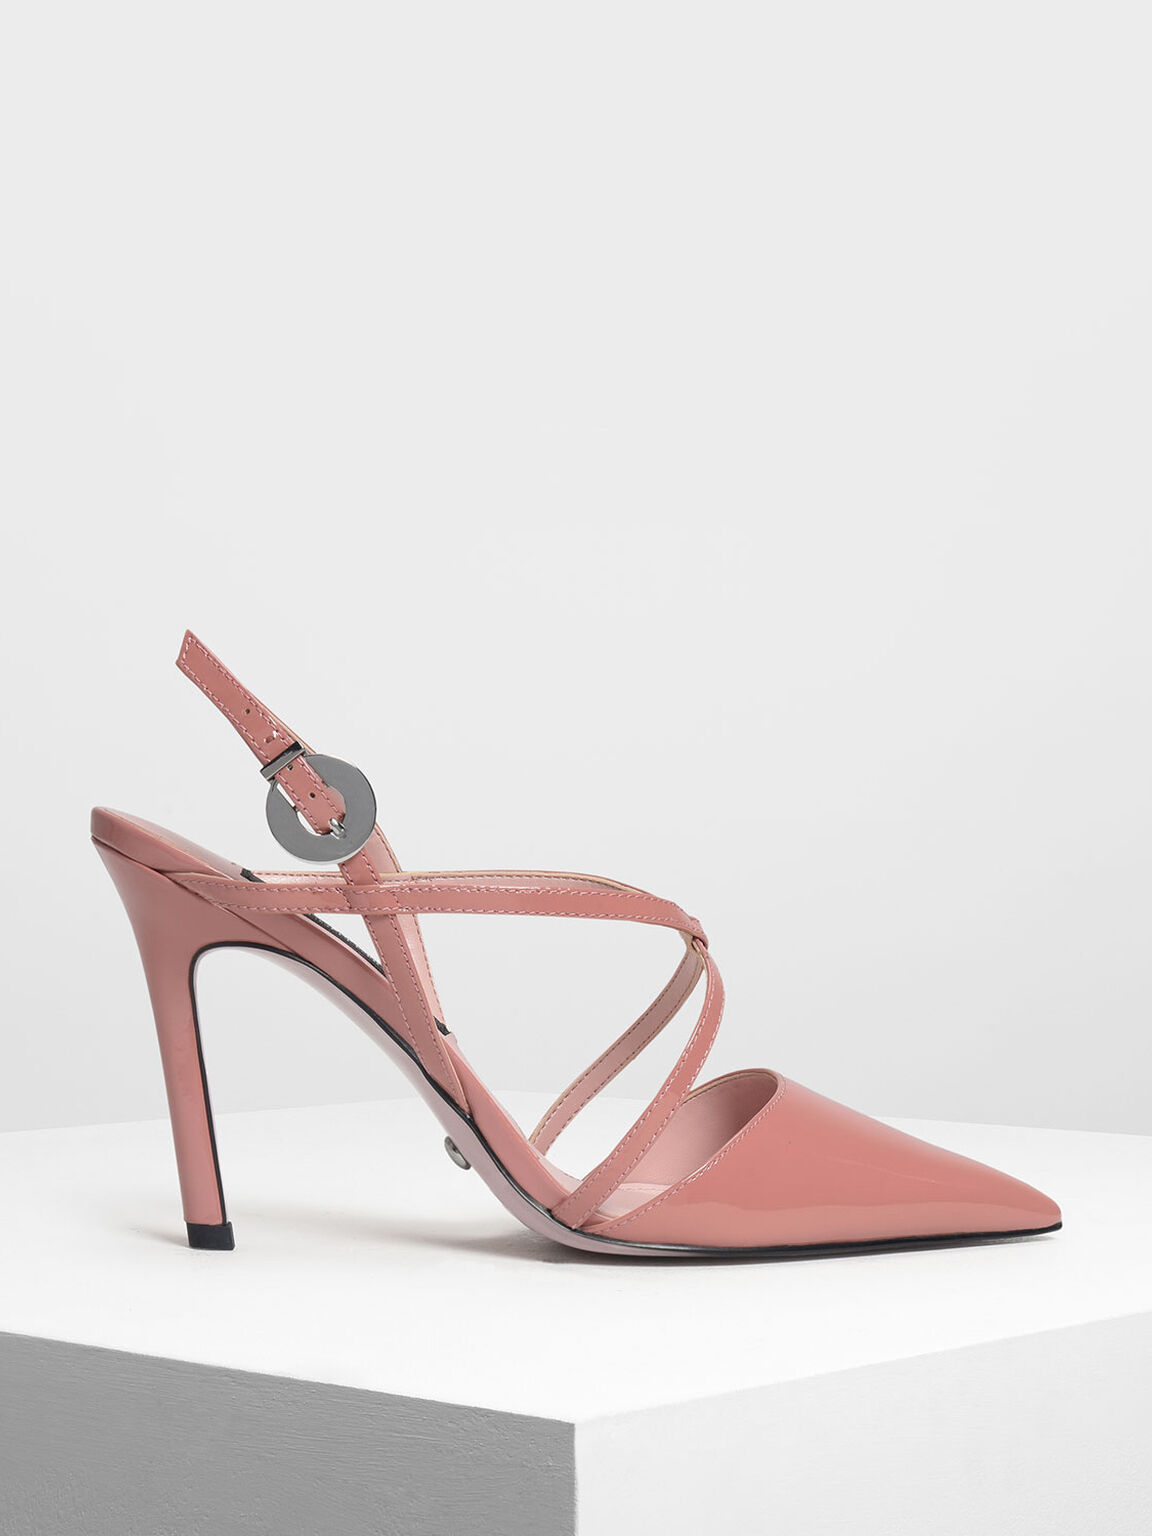 Strappy Criss Cross Leather Heels, Nude, hi-res